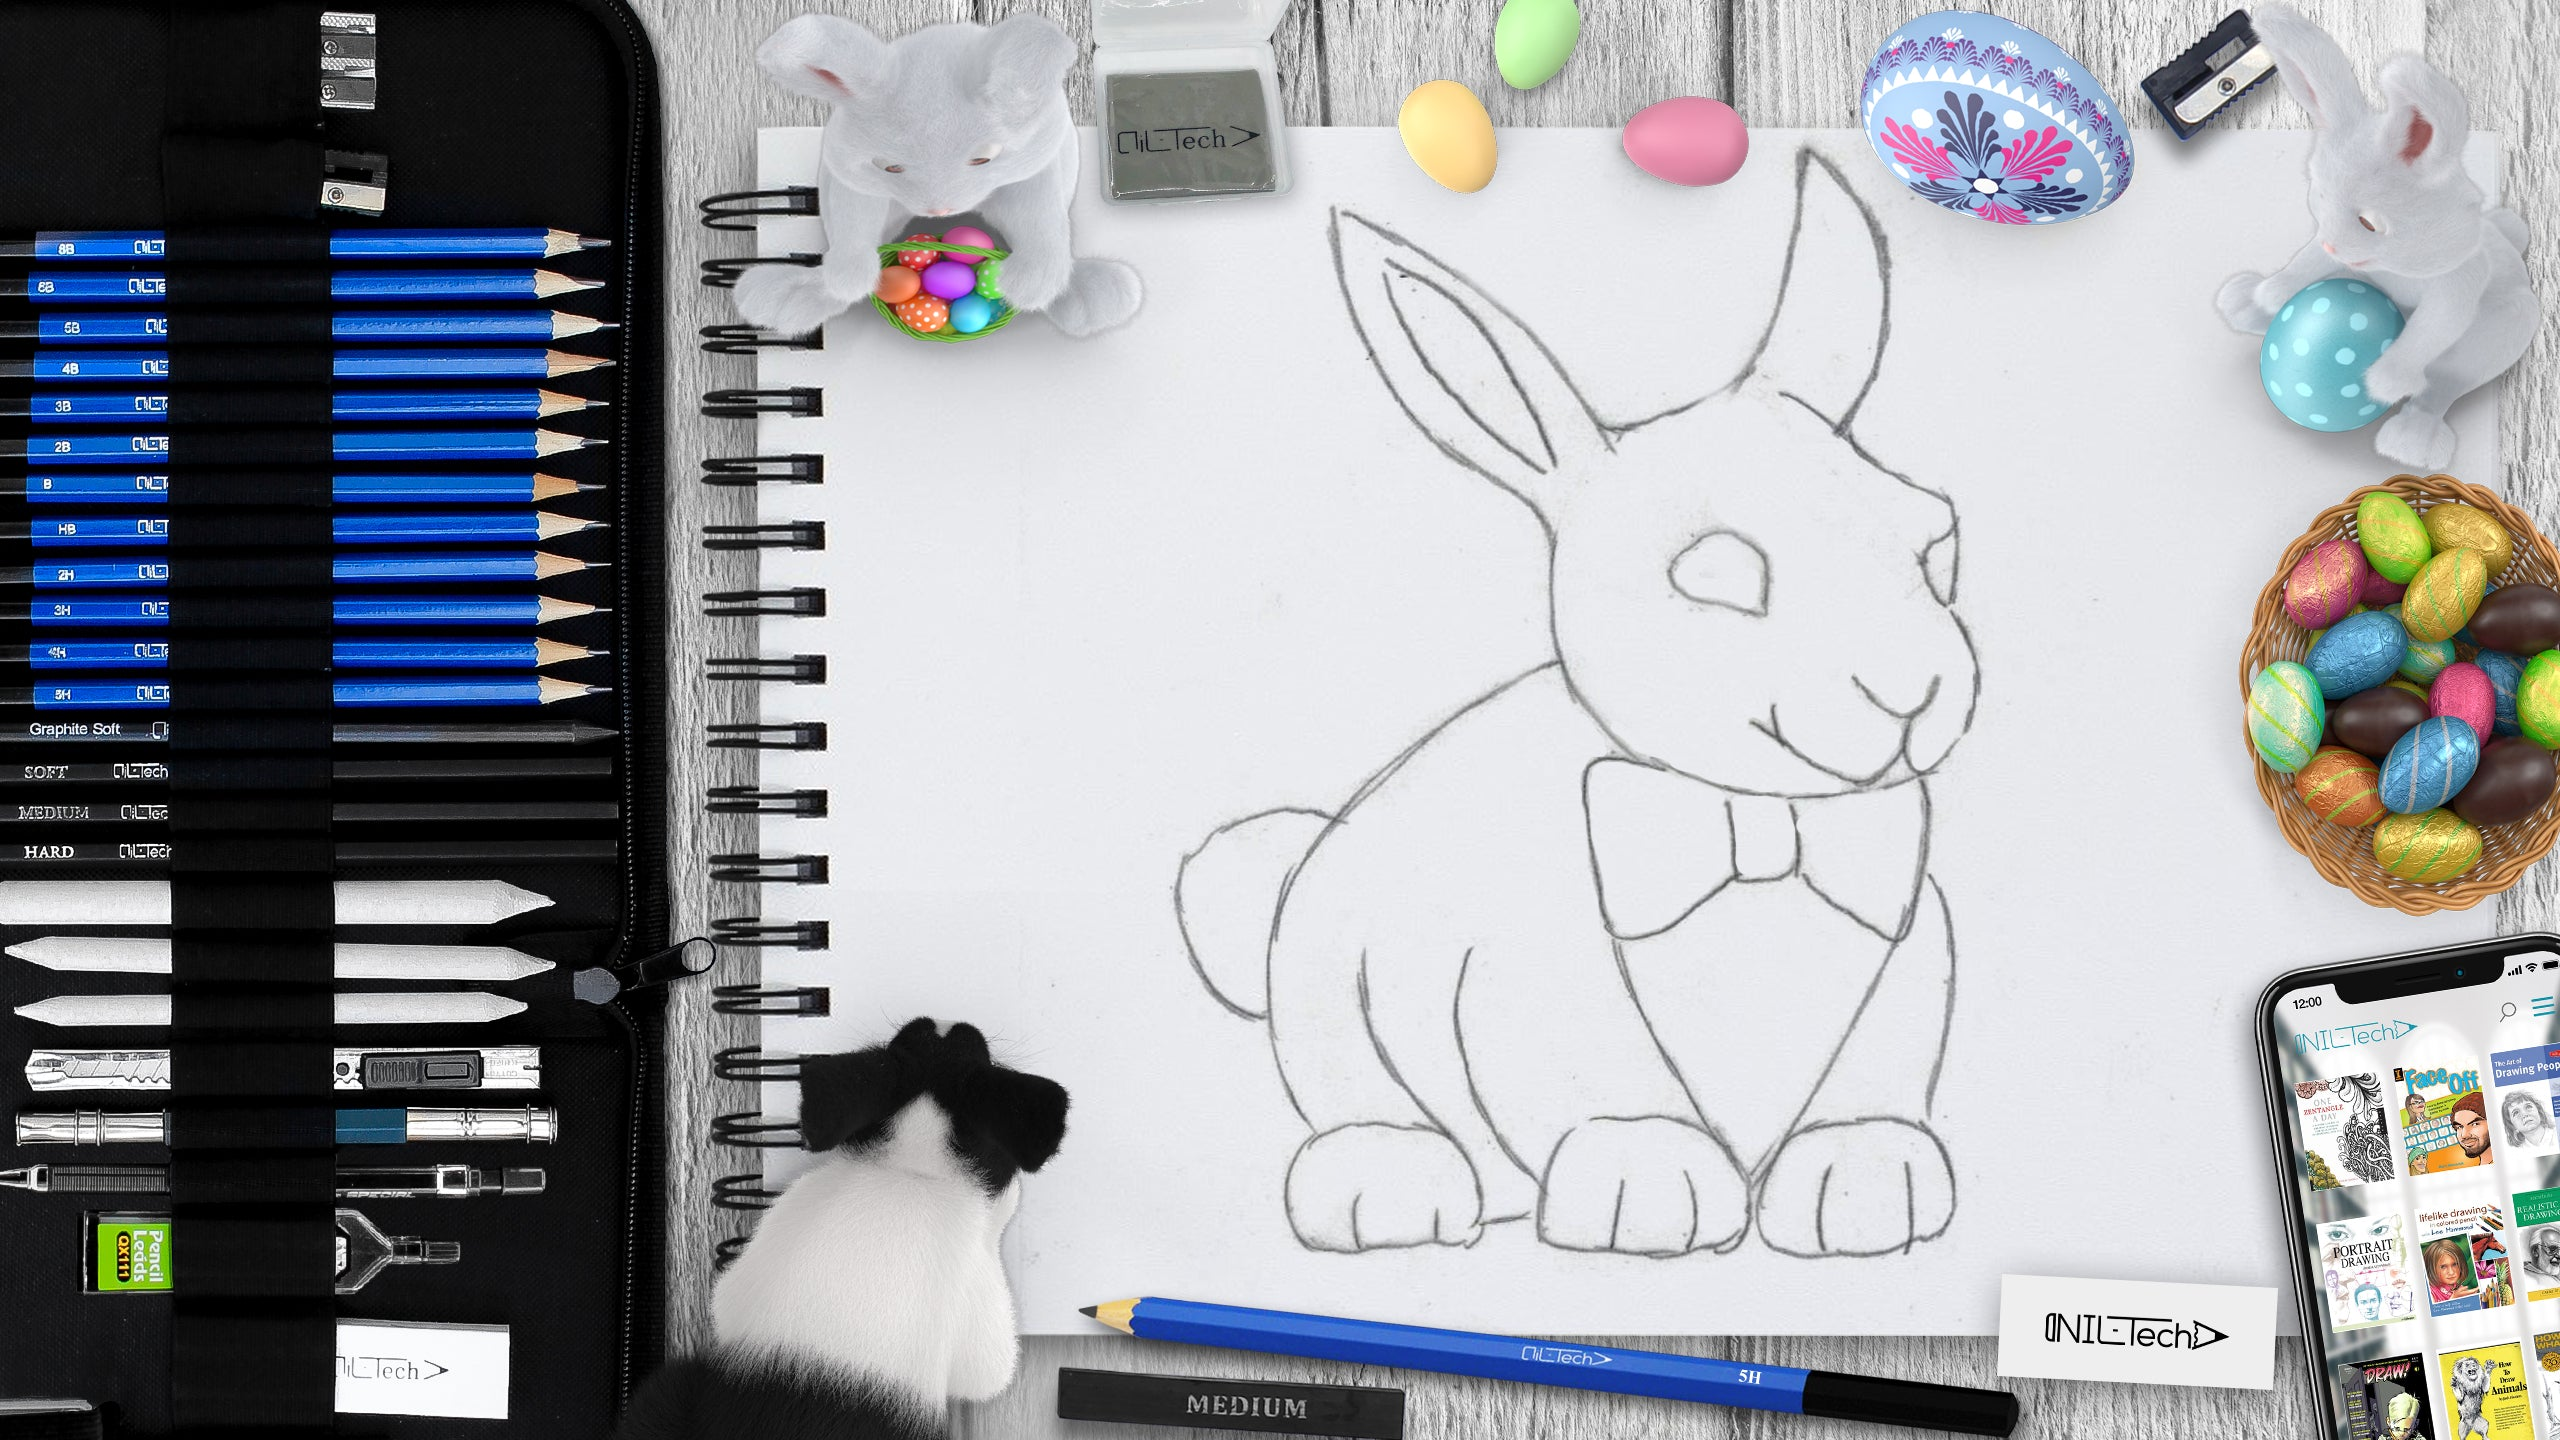 learn hoe to draw Easter bunny step by step